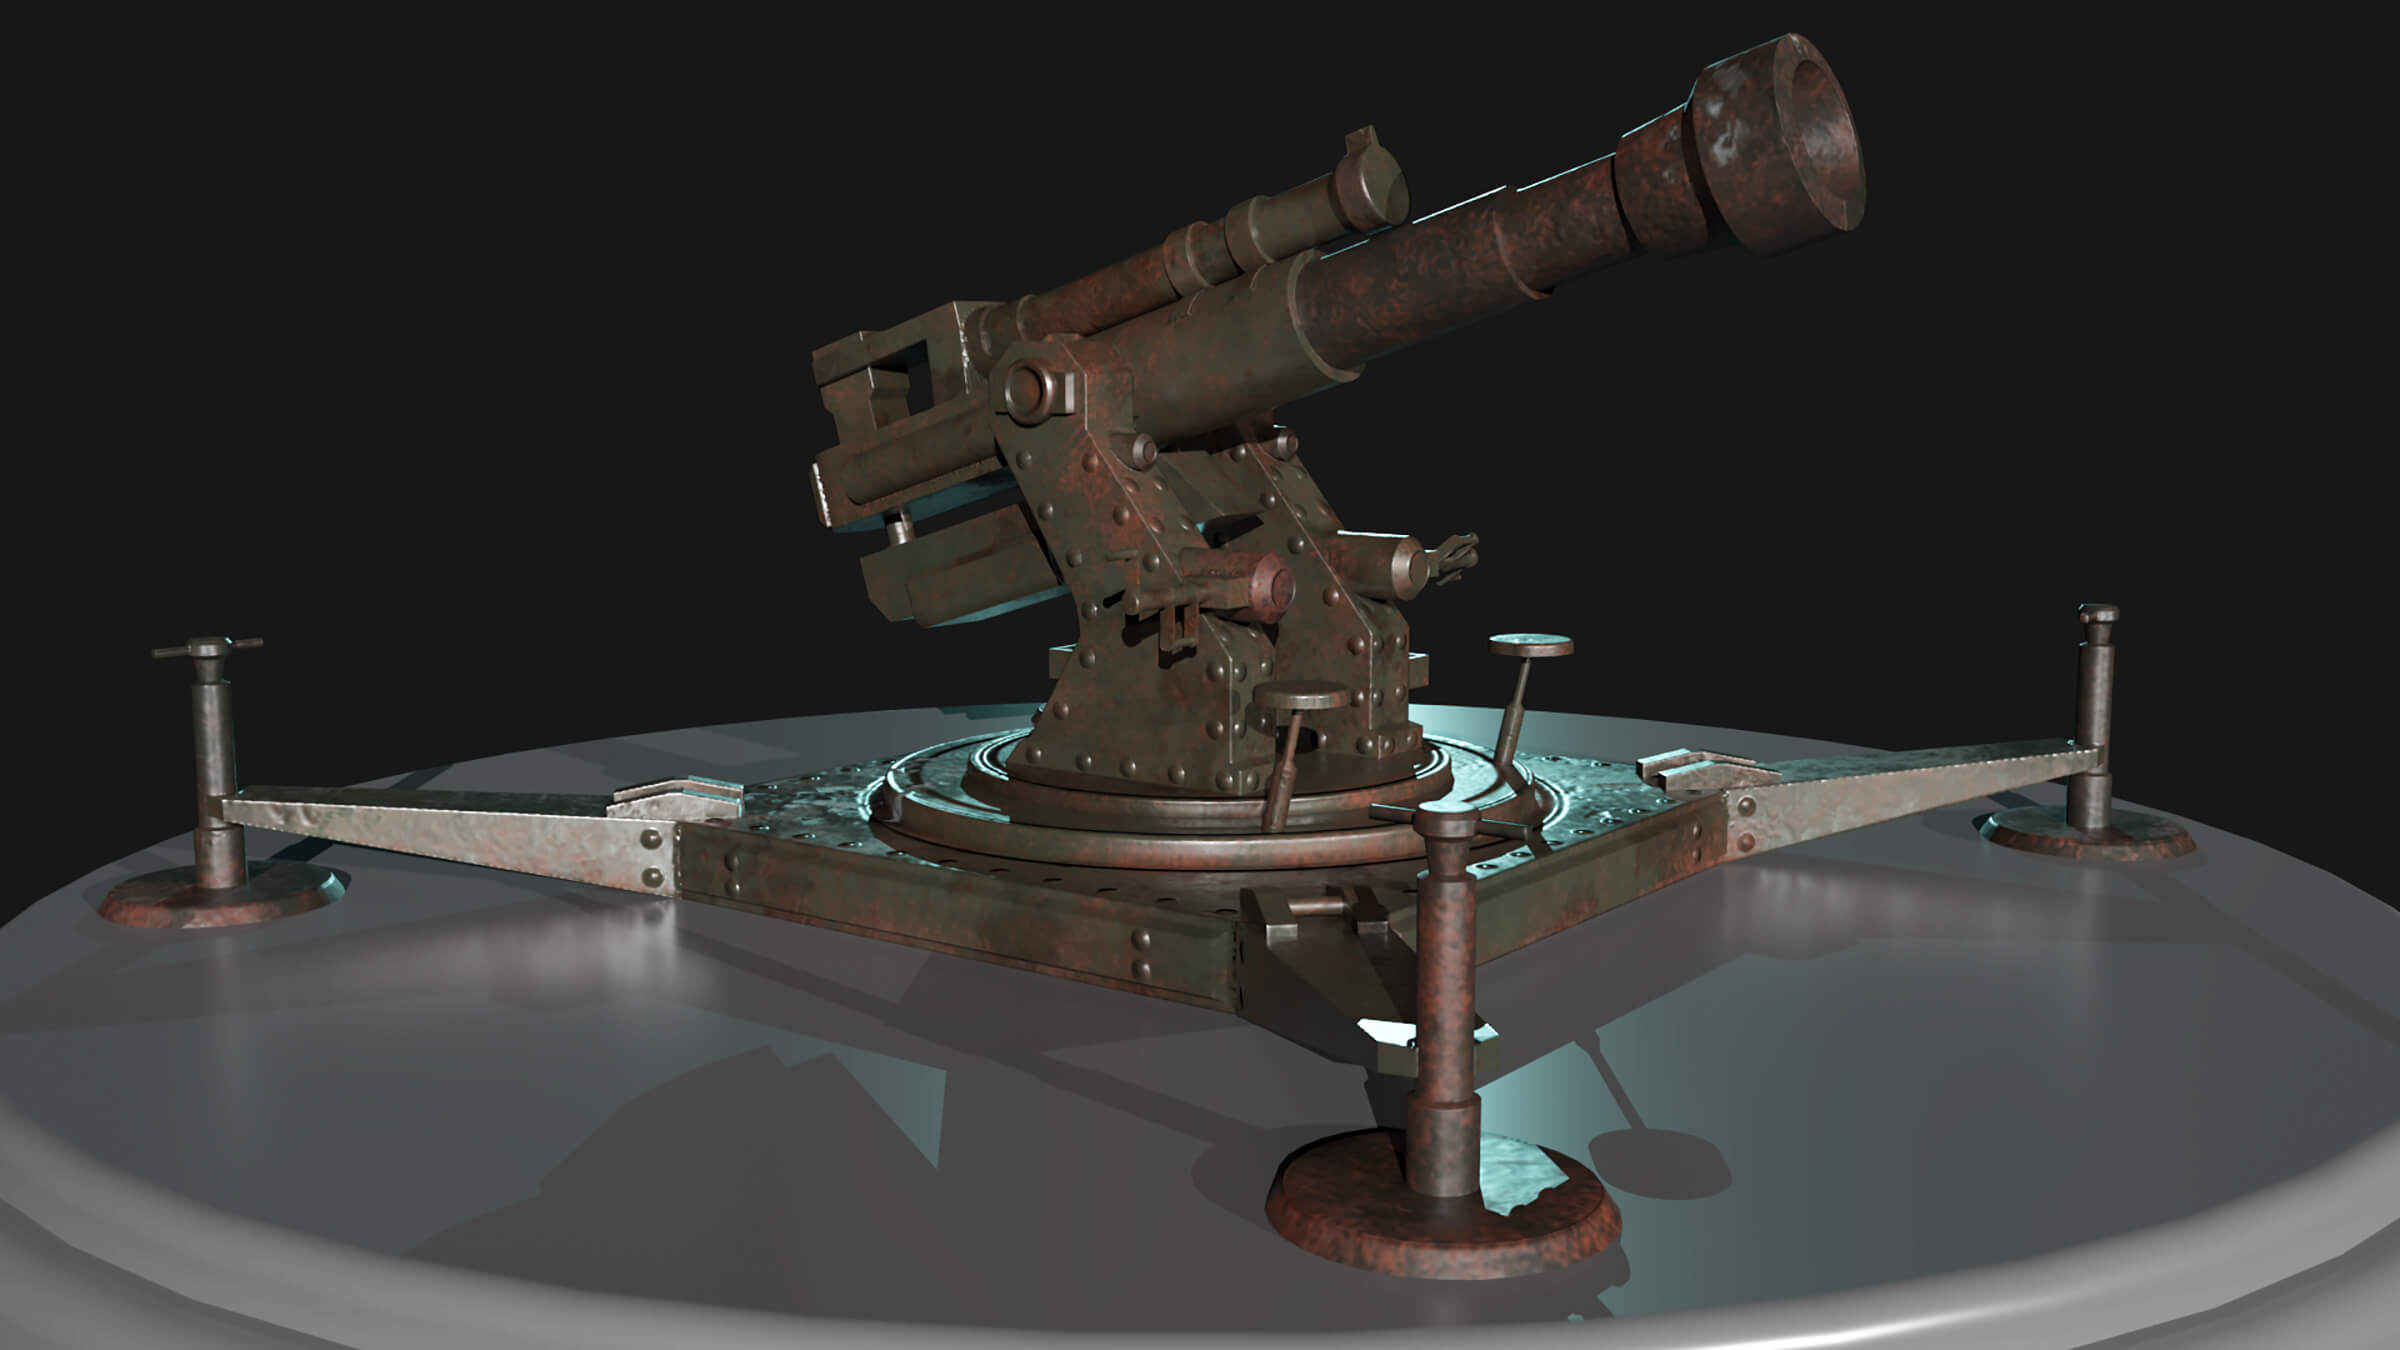 A large weapon on a turntable